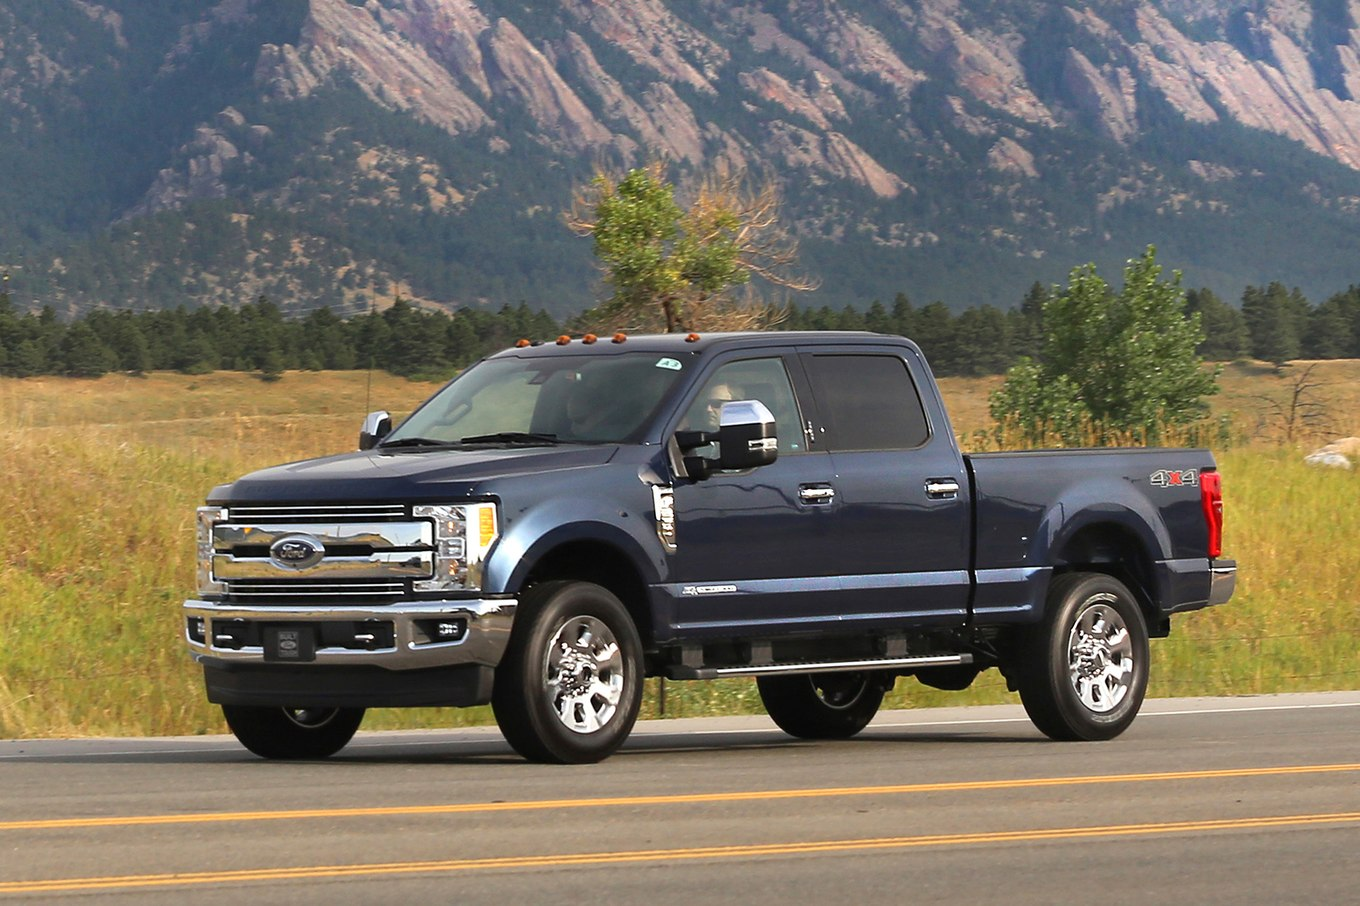 Ford f-250 photo - 2